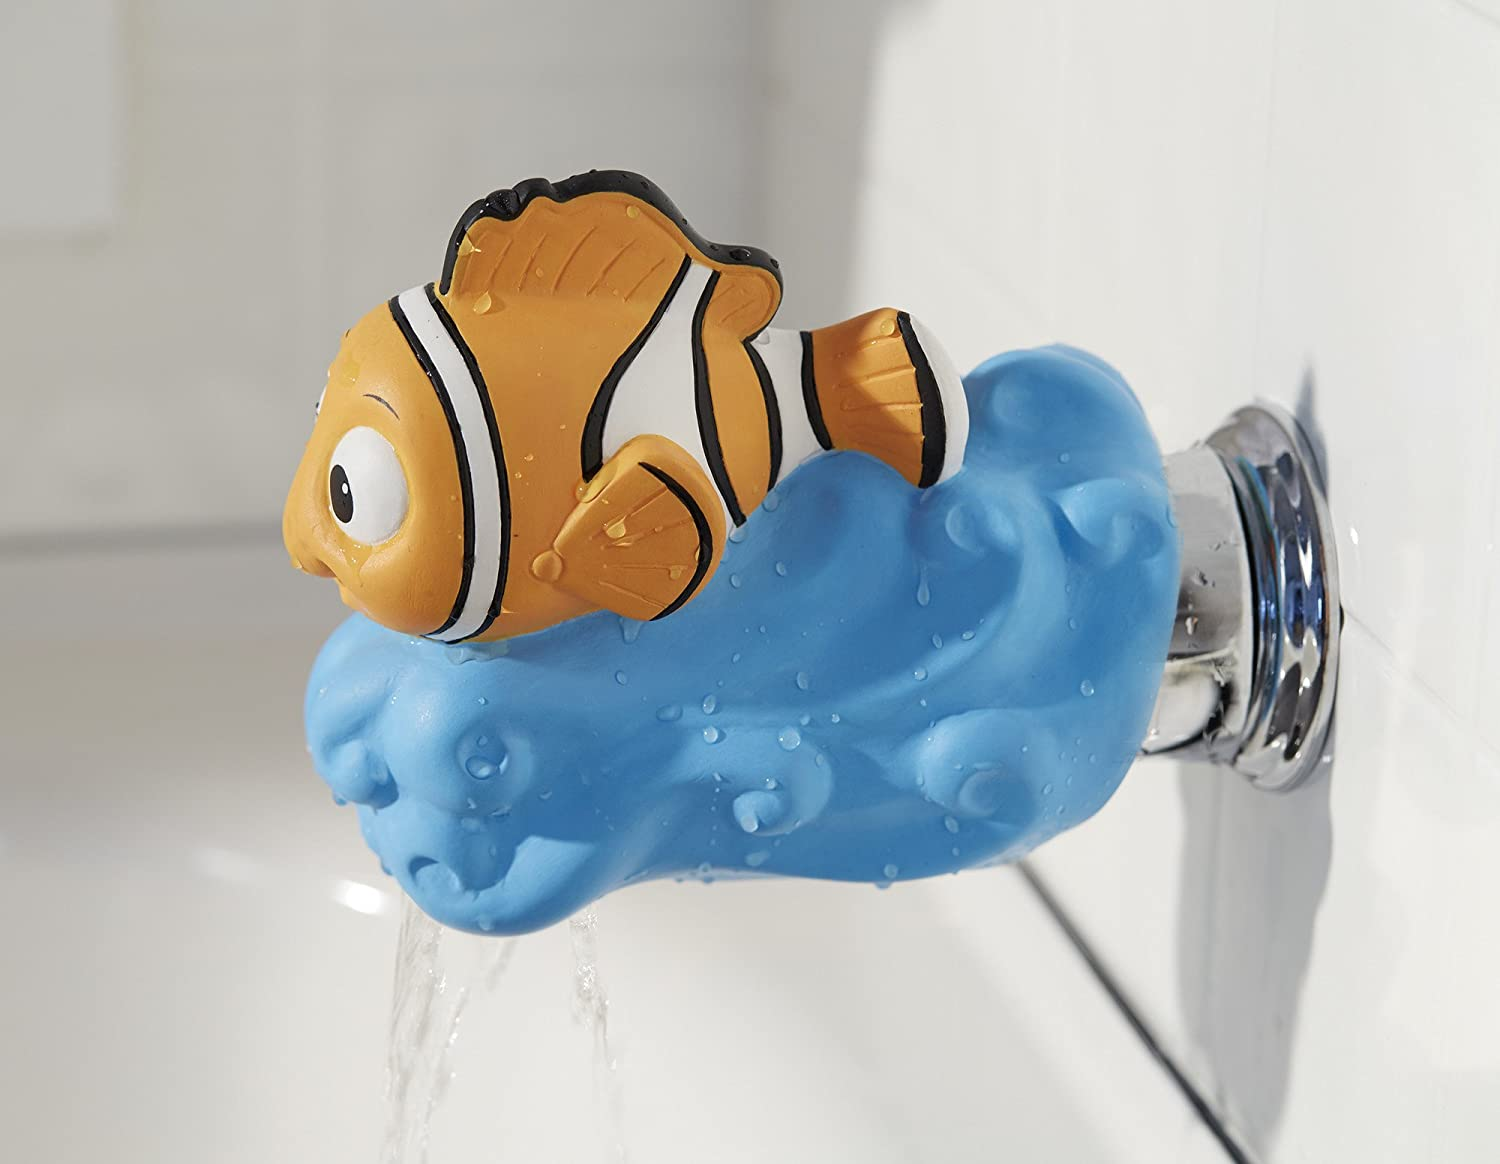 Amazon.com : The First Years Disney Baby Bath Spout Cover, Finding ...